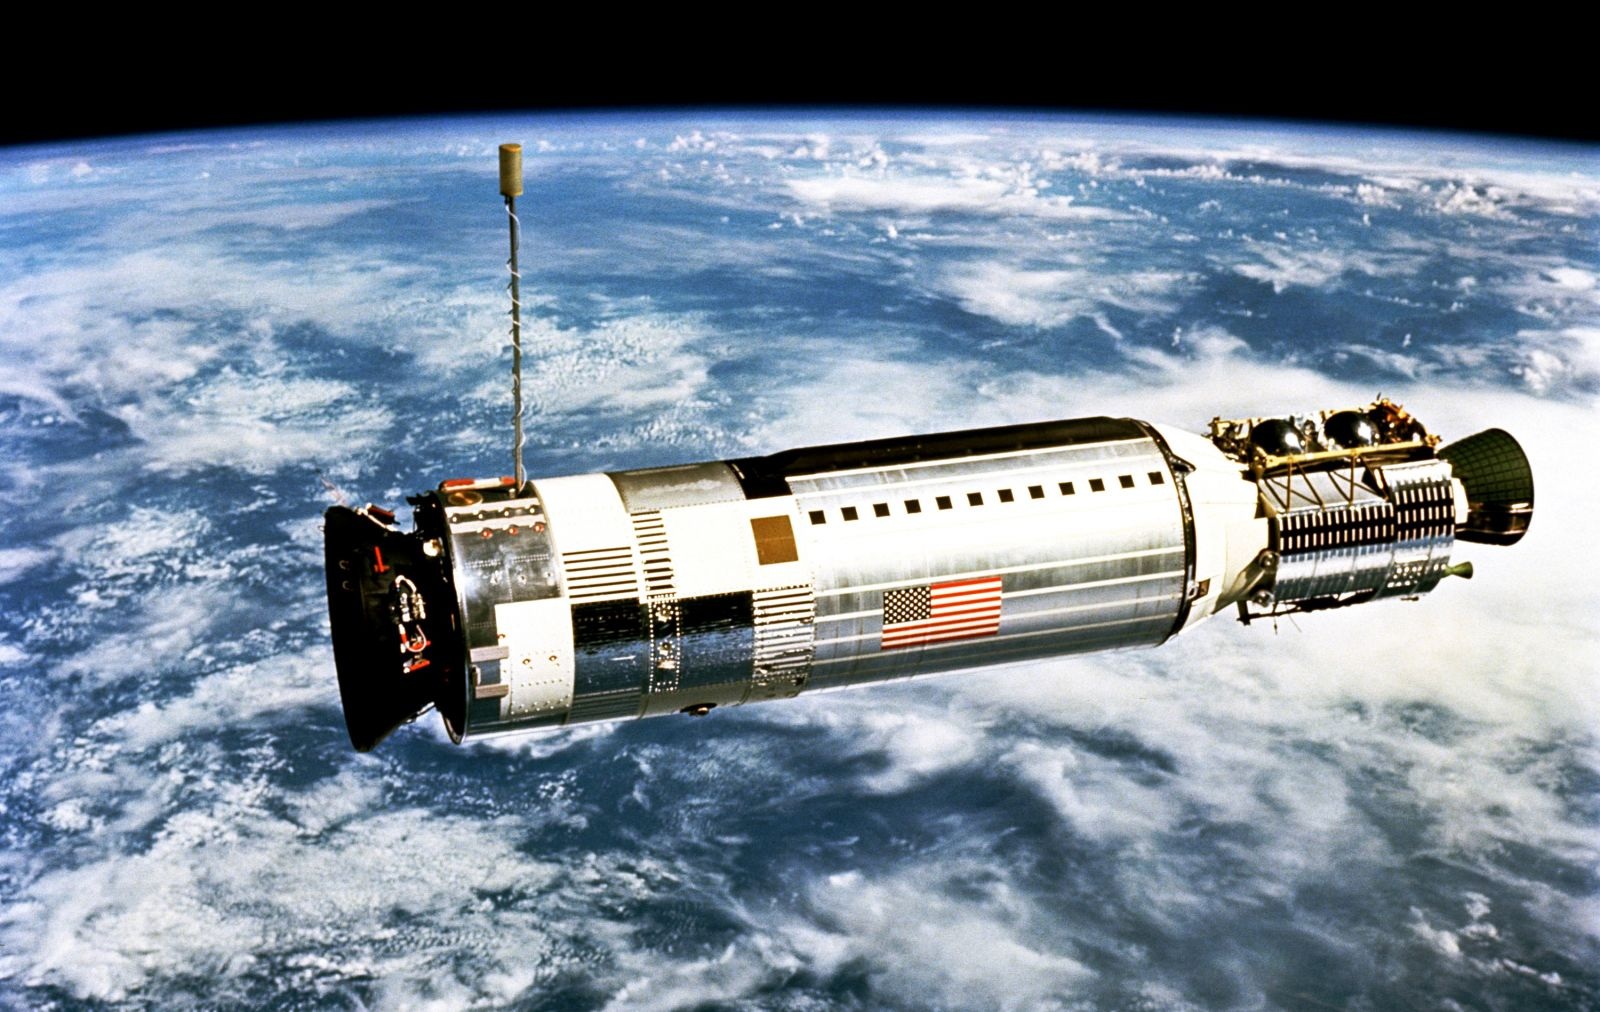 The Agena docking vehicle some 50 feet away from the Gemini XII spacecraft. Photo Credit: NASA